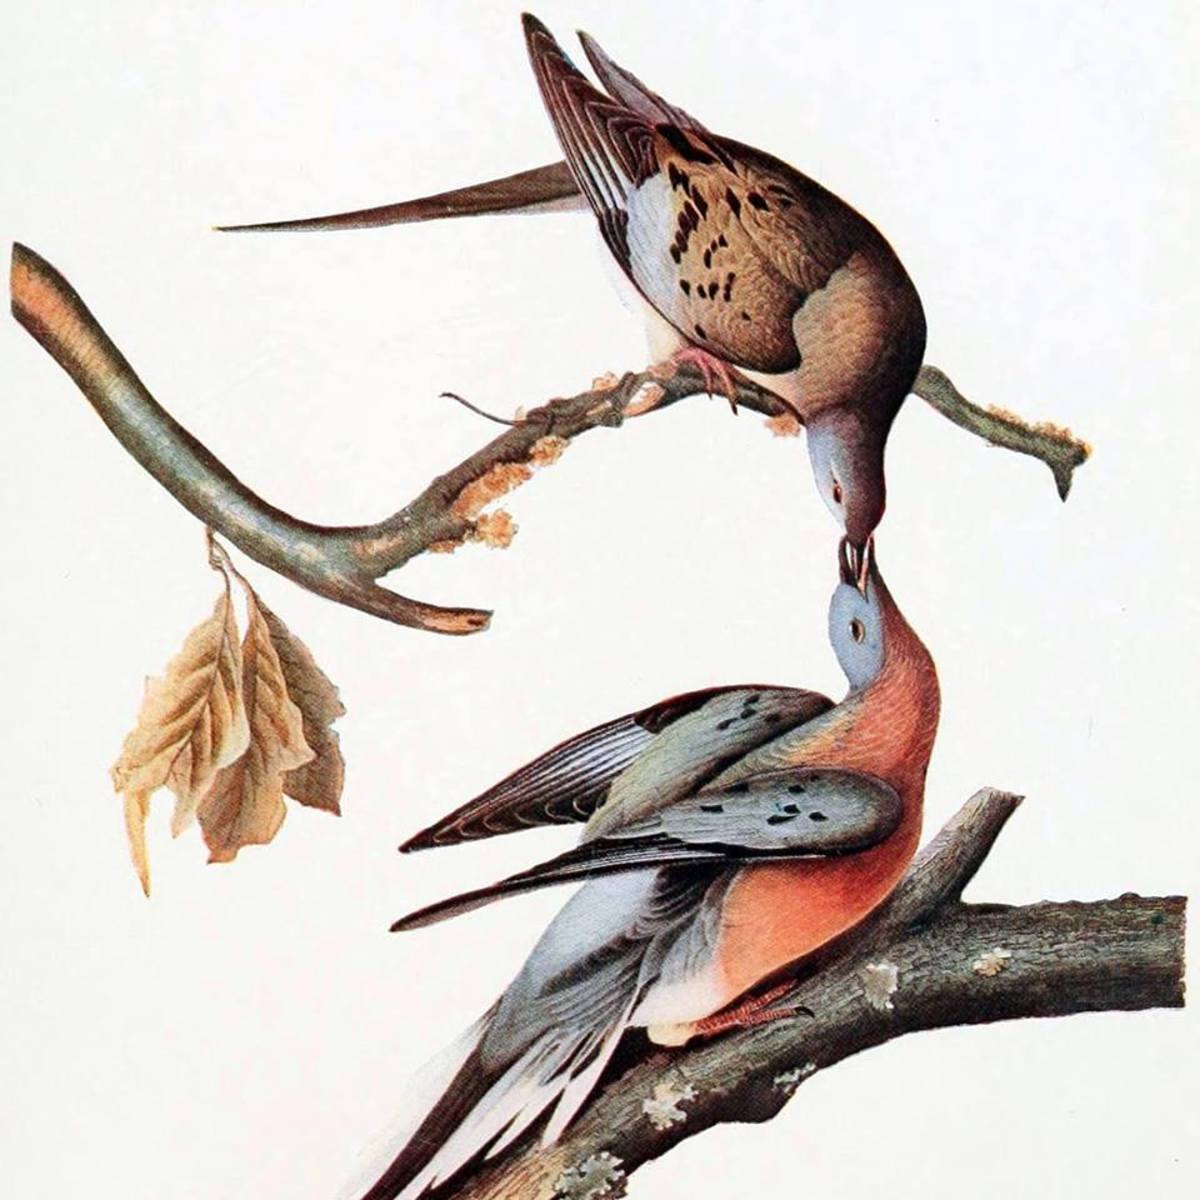 The Story of the Extinct Passenger Pigeons